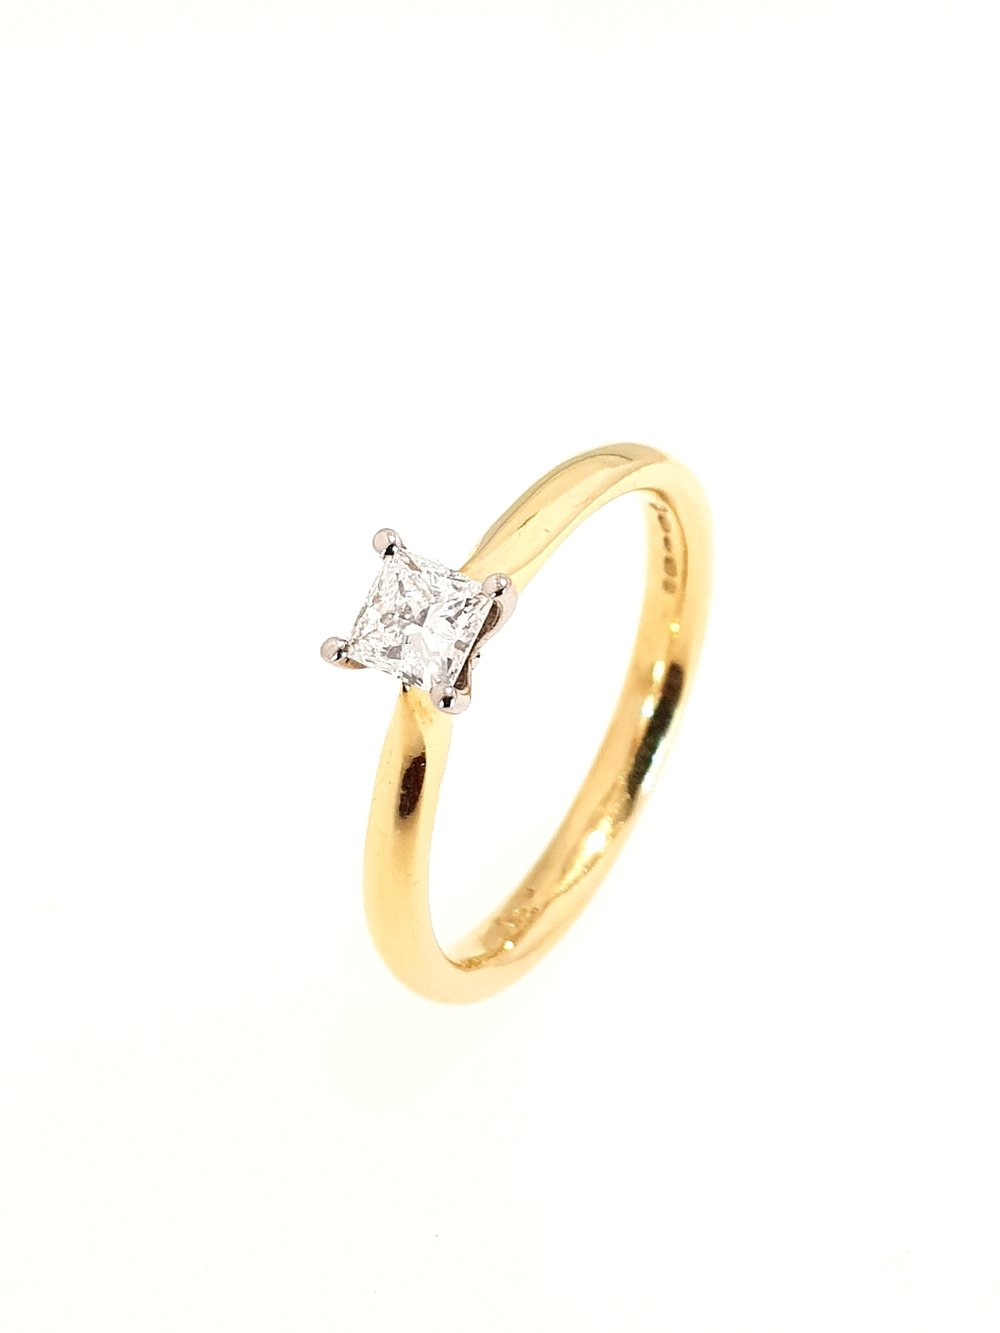 18ct Yellow Gold Diamond Ring, Princess Cut  .26ct, G, Si1  Stock Code: N8582  £1275